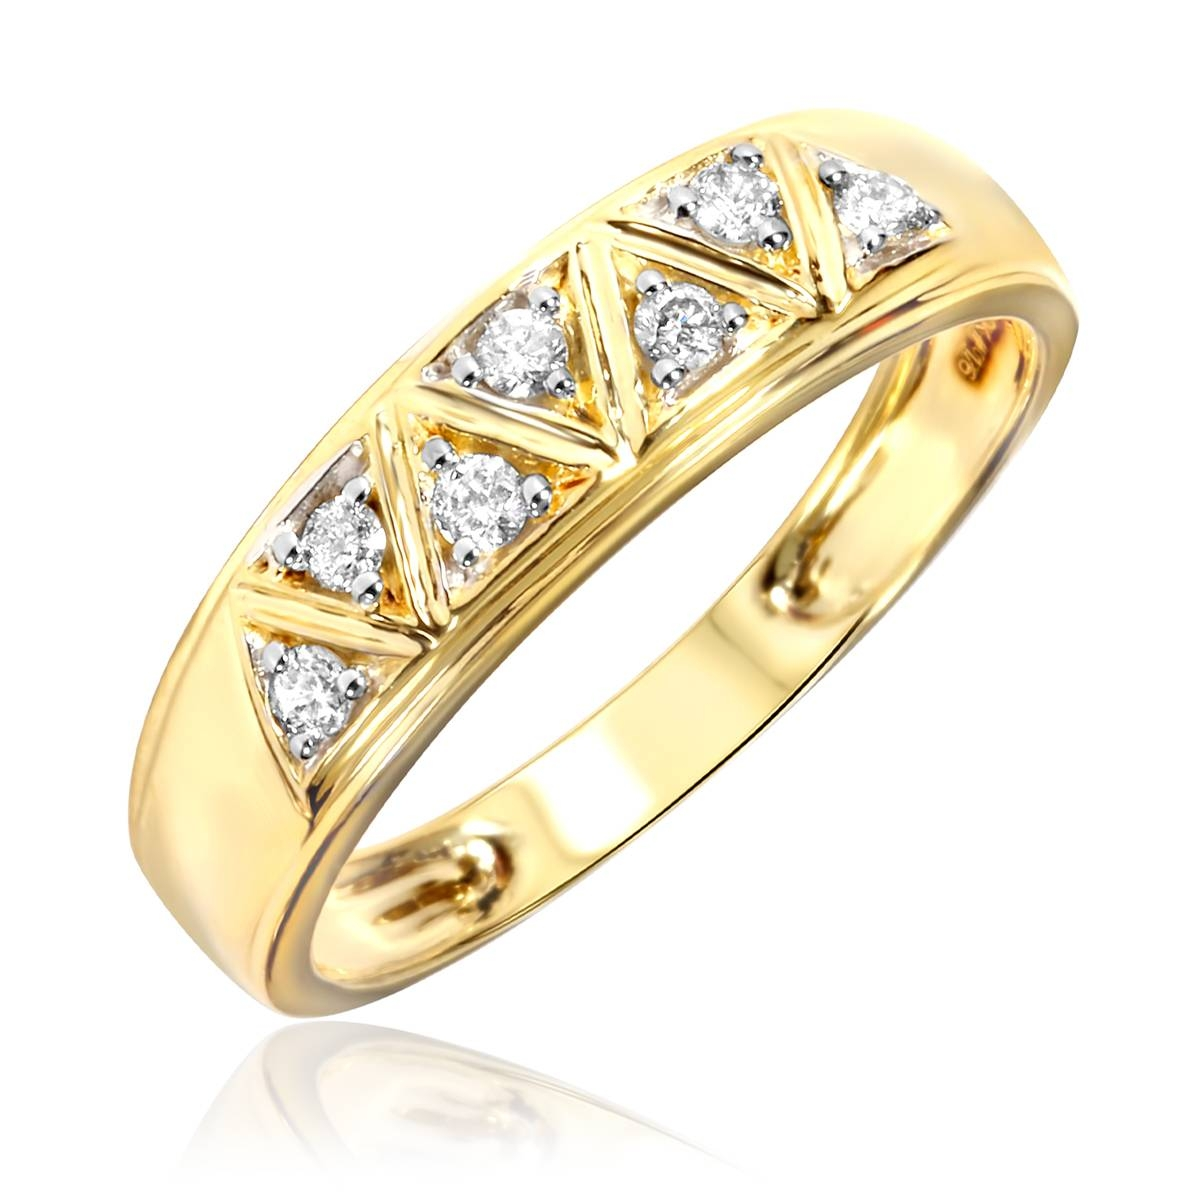 1/2 Carat Diamond Trio Wedding Ring Set 14K Yellow Gold In Women's Yellow Gold Wedding Bands (View 2 of 15)